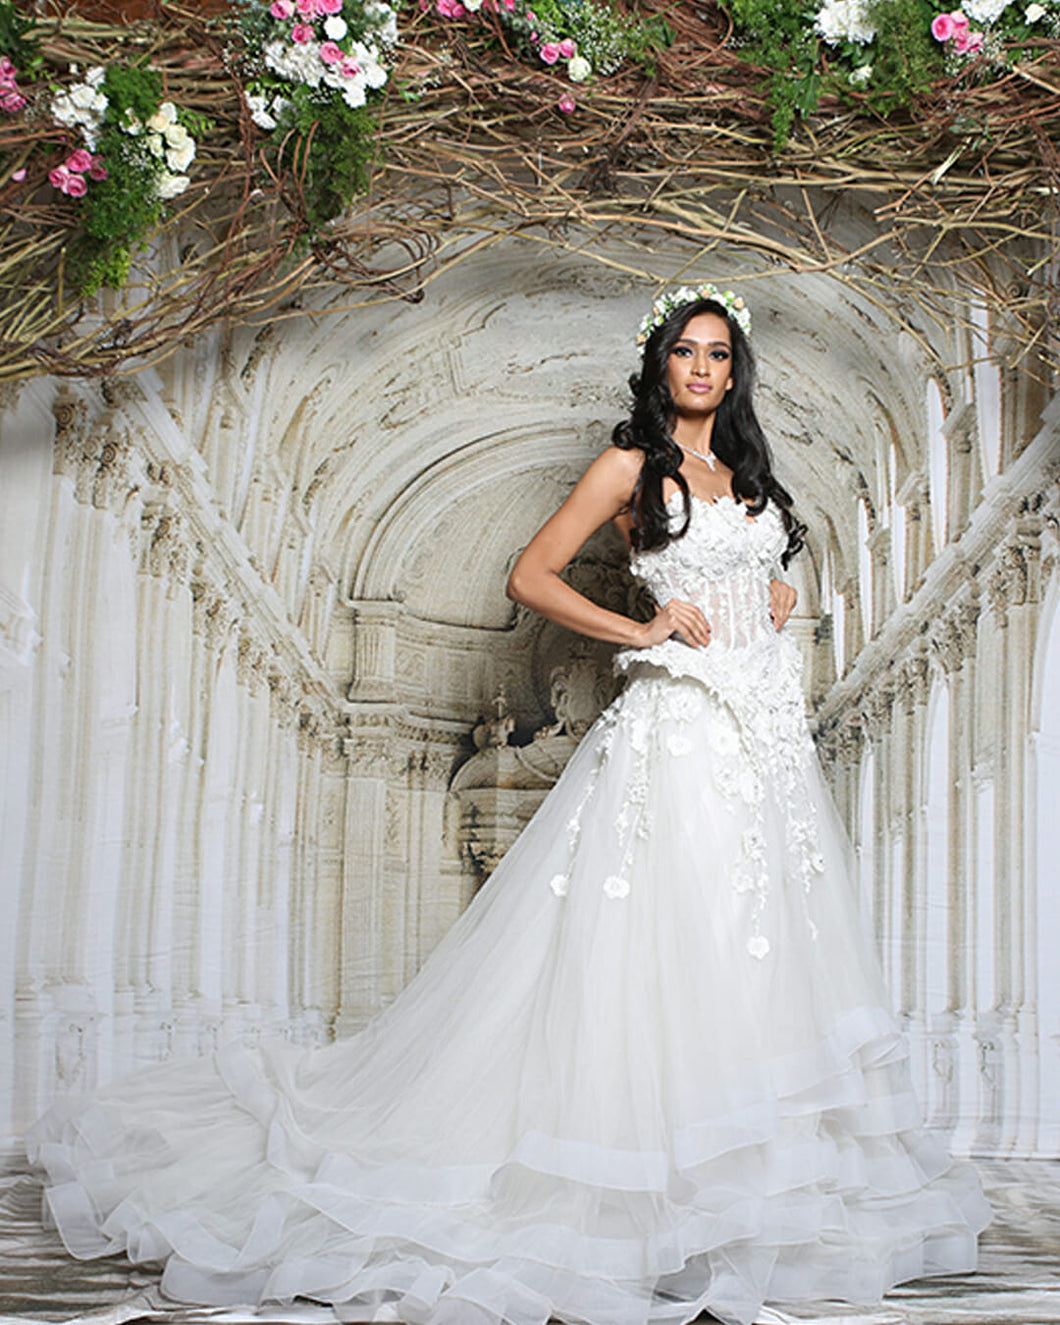 White Peplum Layered Gown - Archana Kochhar India